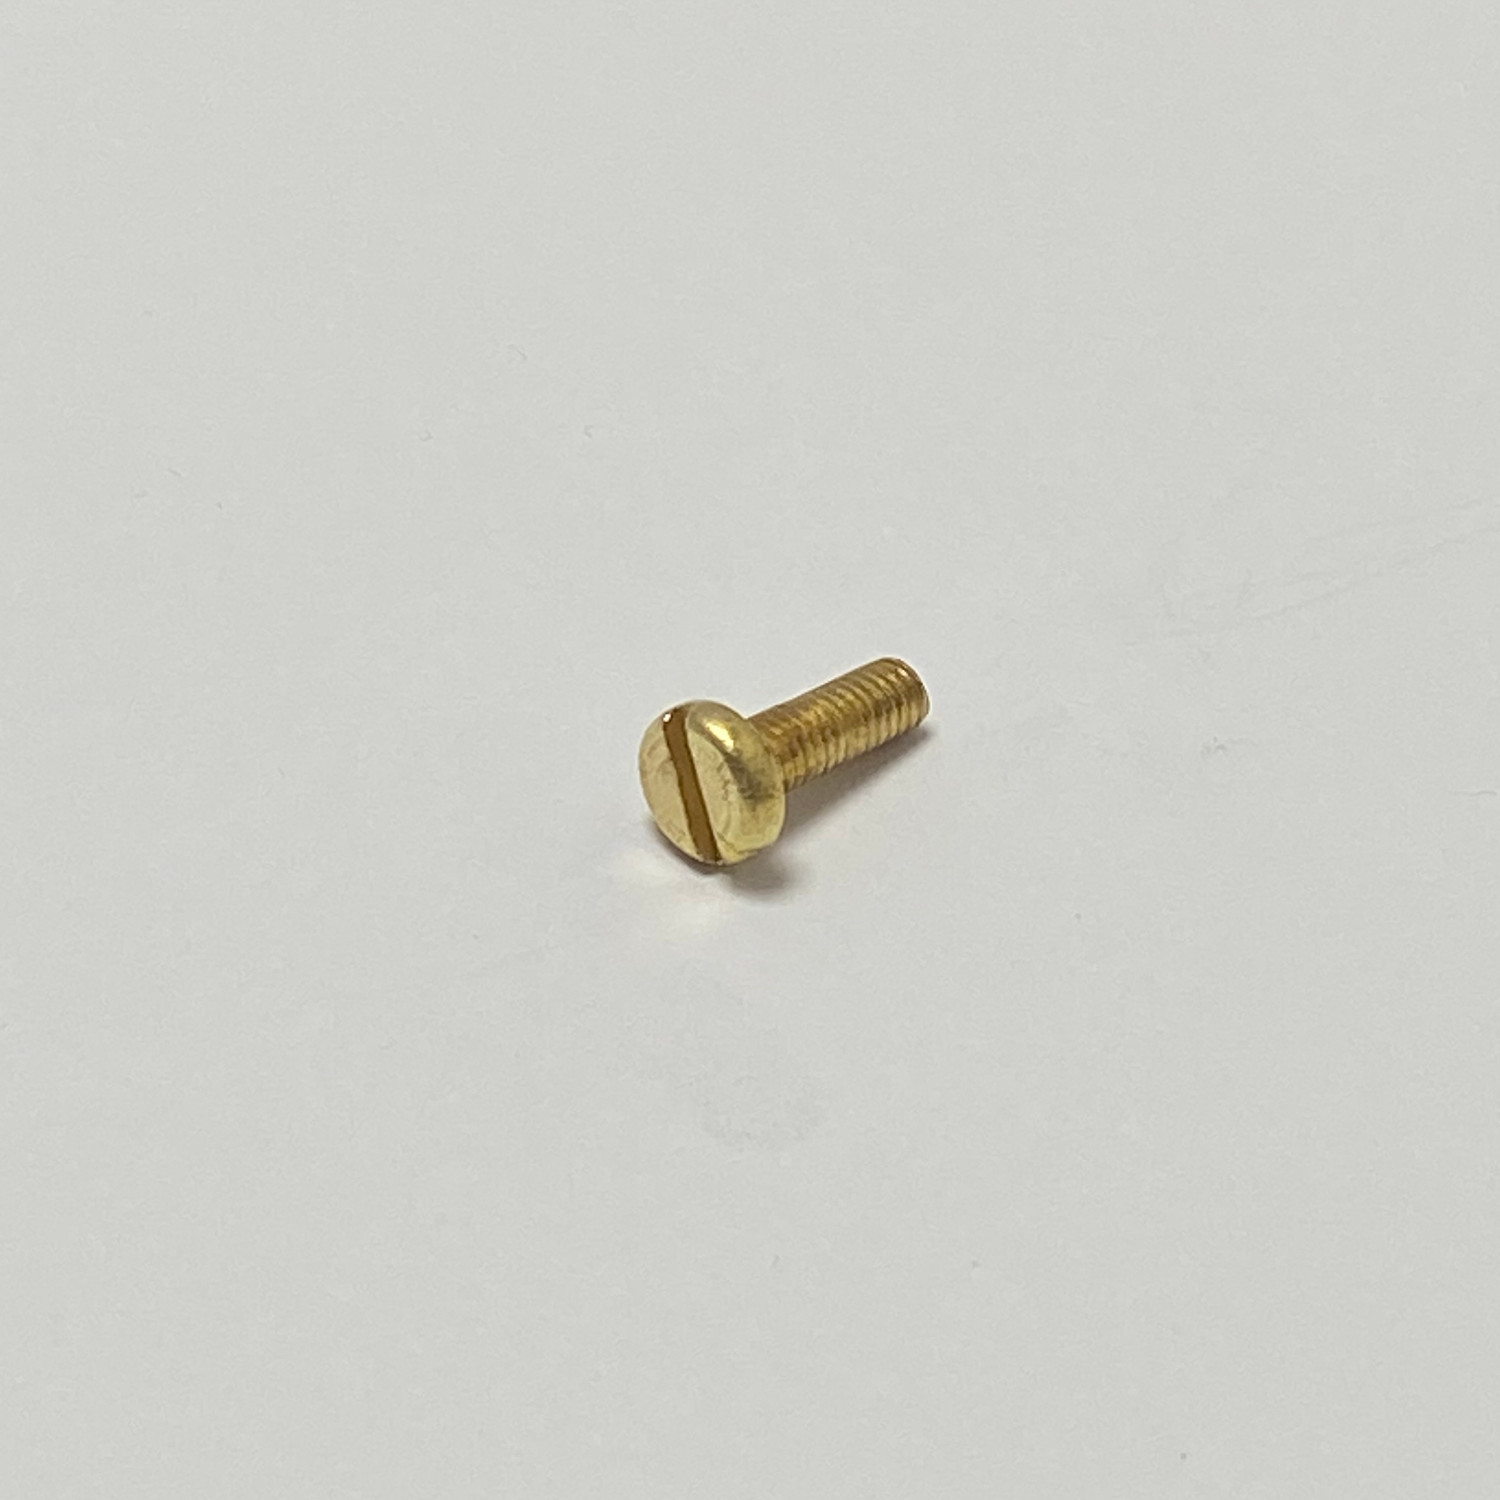 M2.5 X 8 BRASS SLOTTED CHEESE SCREWS